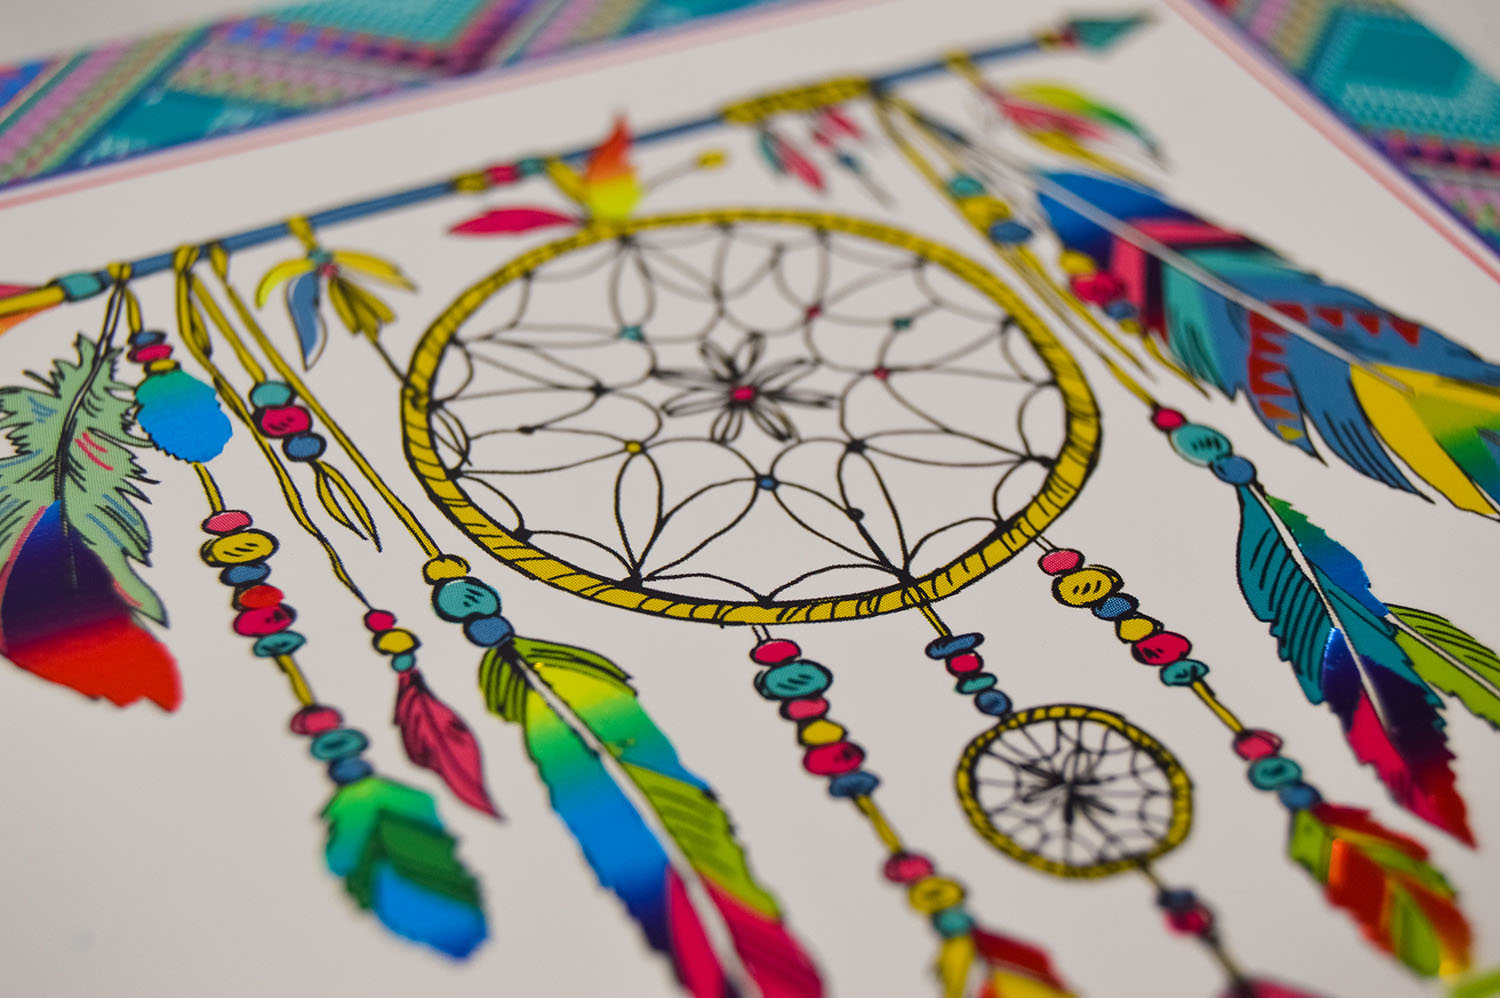 foil dreamcatcher greetings card